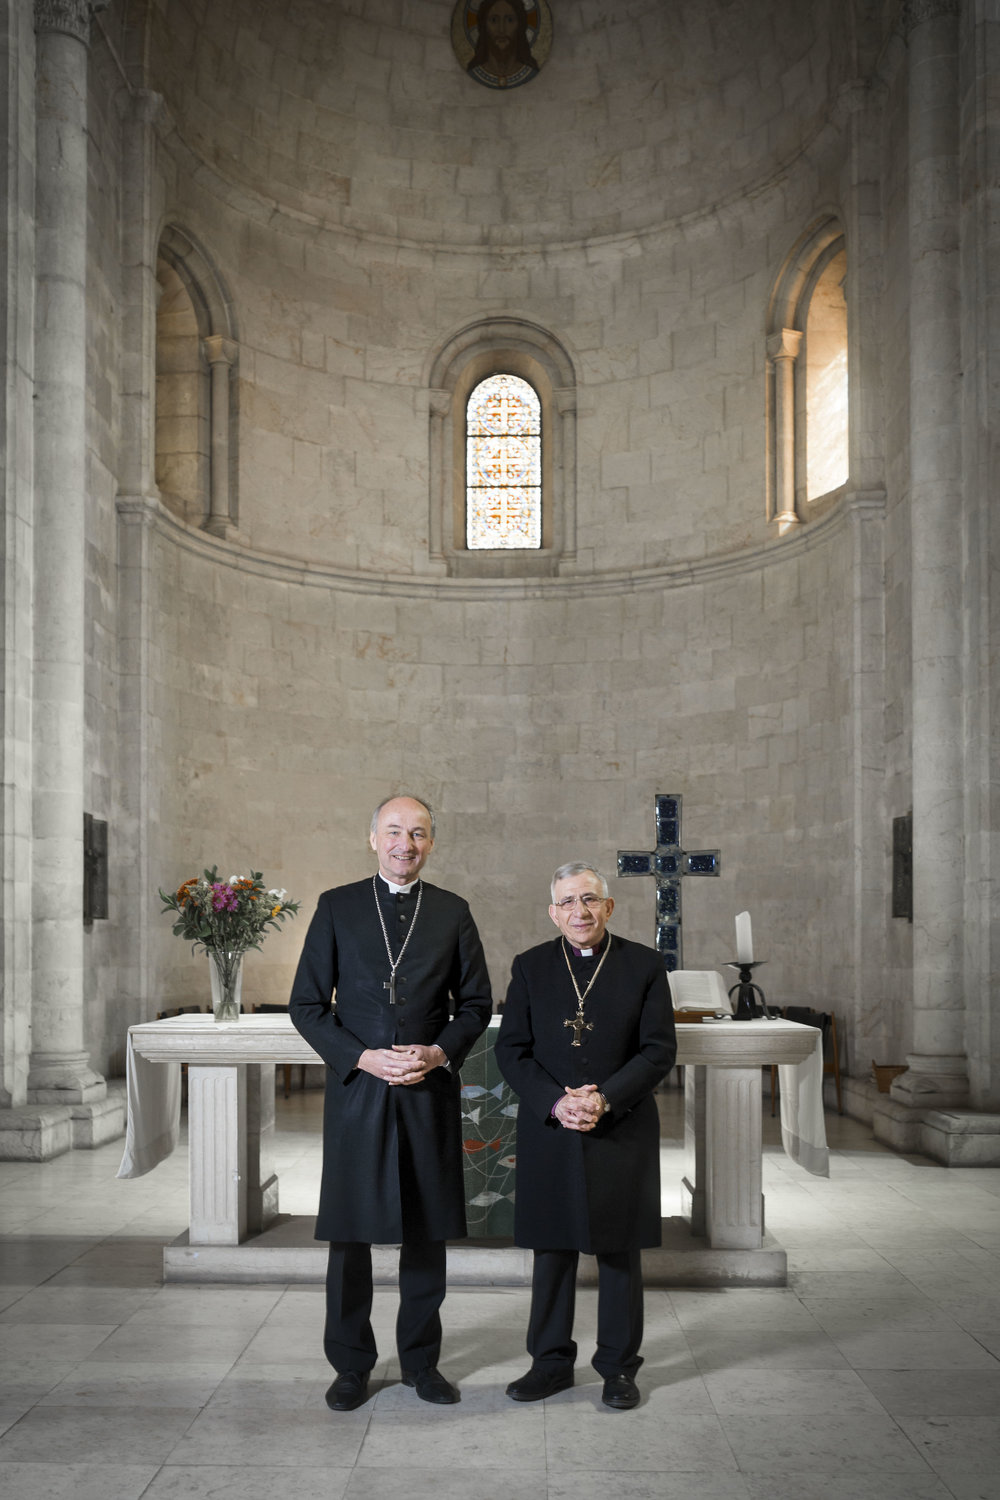 Portrait of Rt. Rev. Bishop Dr. Munib A. Younan (r.) and the Right Reverend Wolfgang Schmidt, Propst (l.) in the Church of the Redeemer in Jerusalem's Old City.